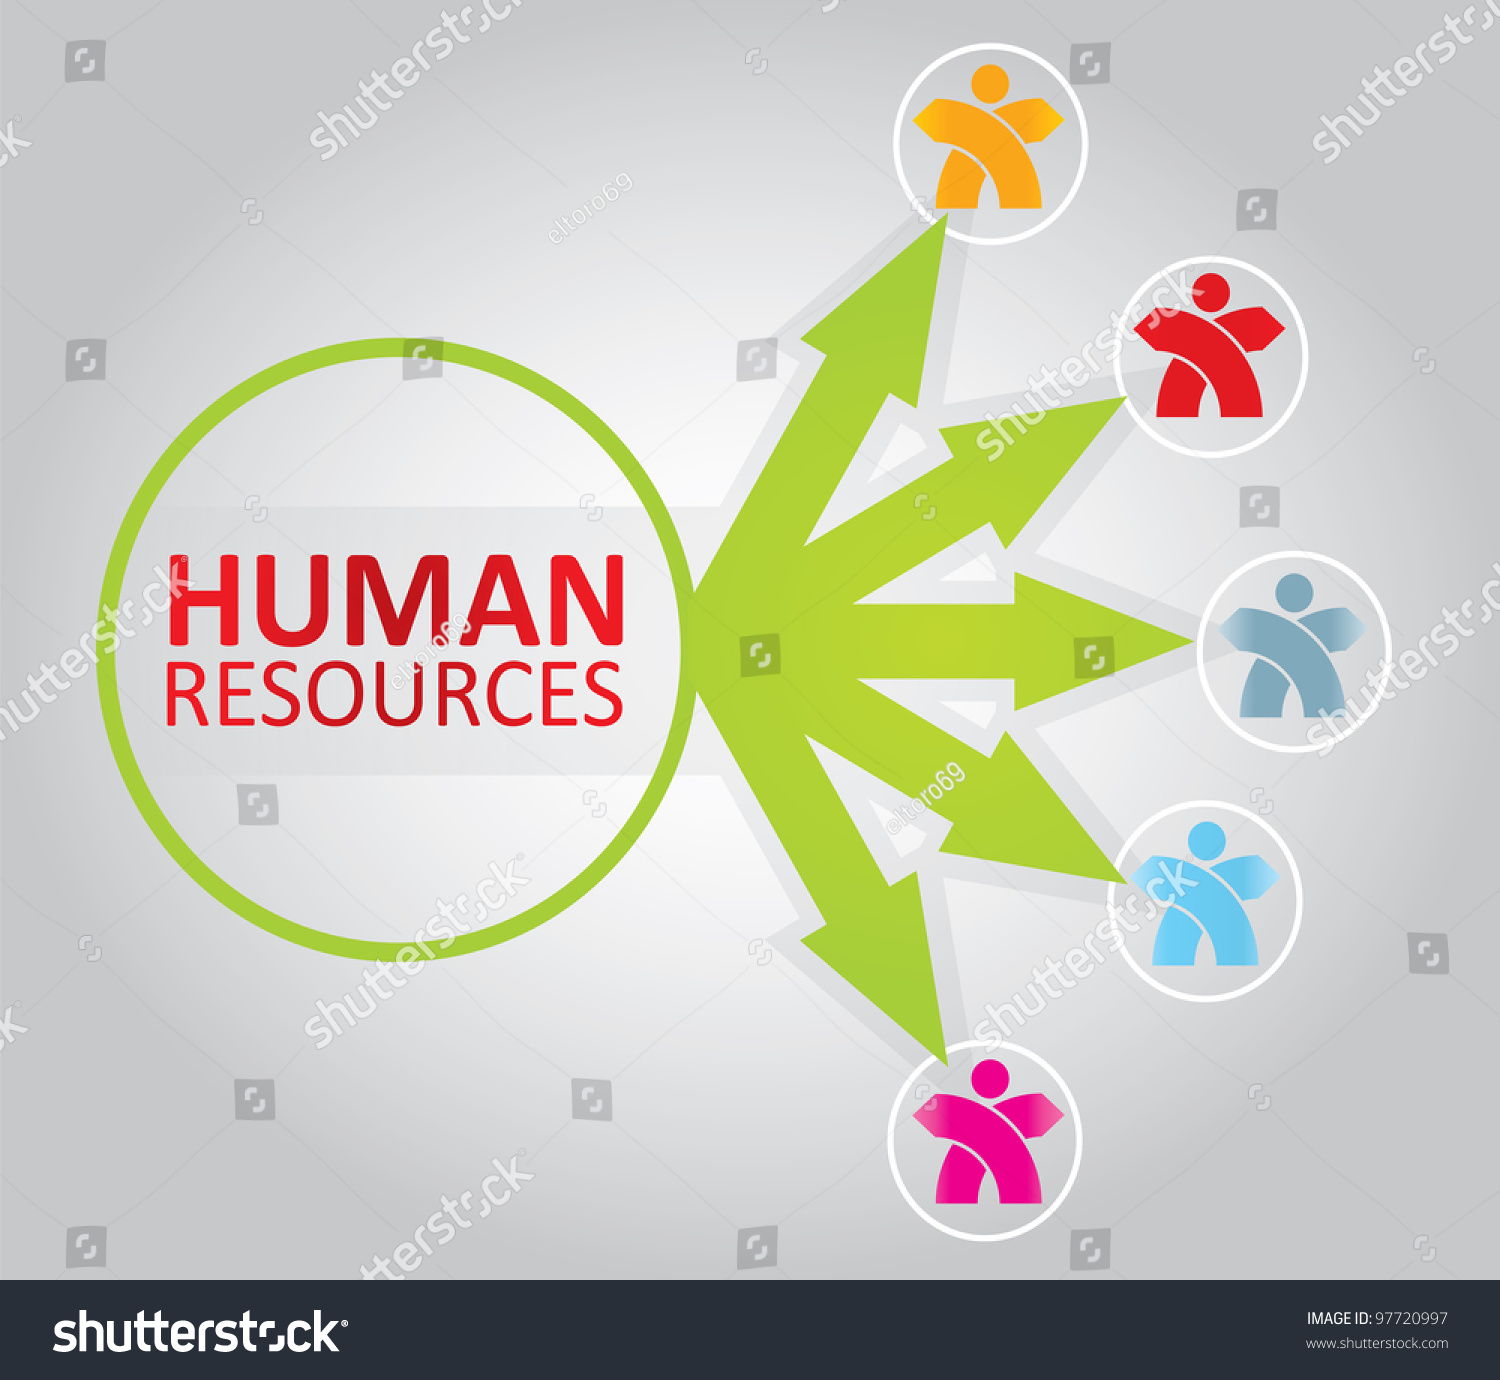 Human Resources: Abstract Illustration With Sign